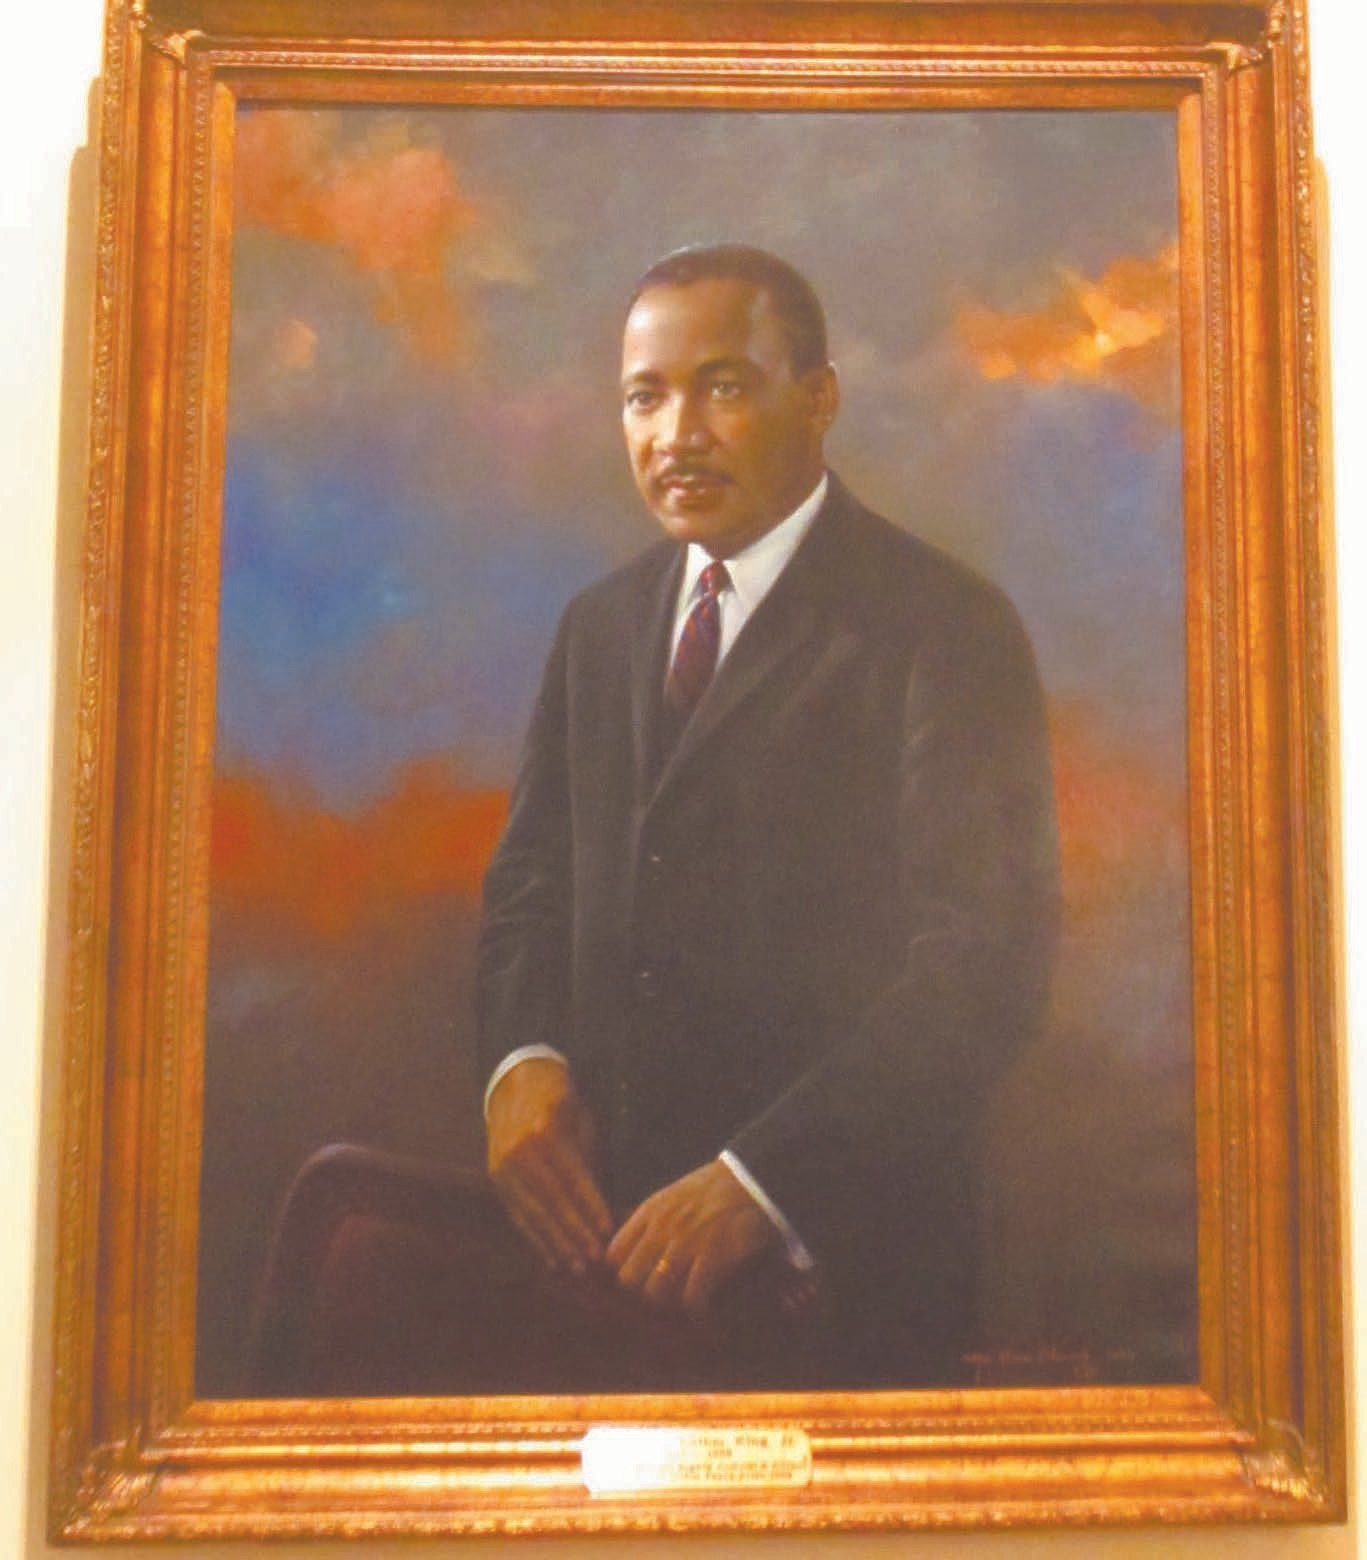 Dr. King's portrait inside the capitol building.